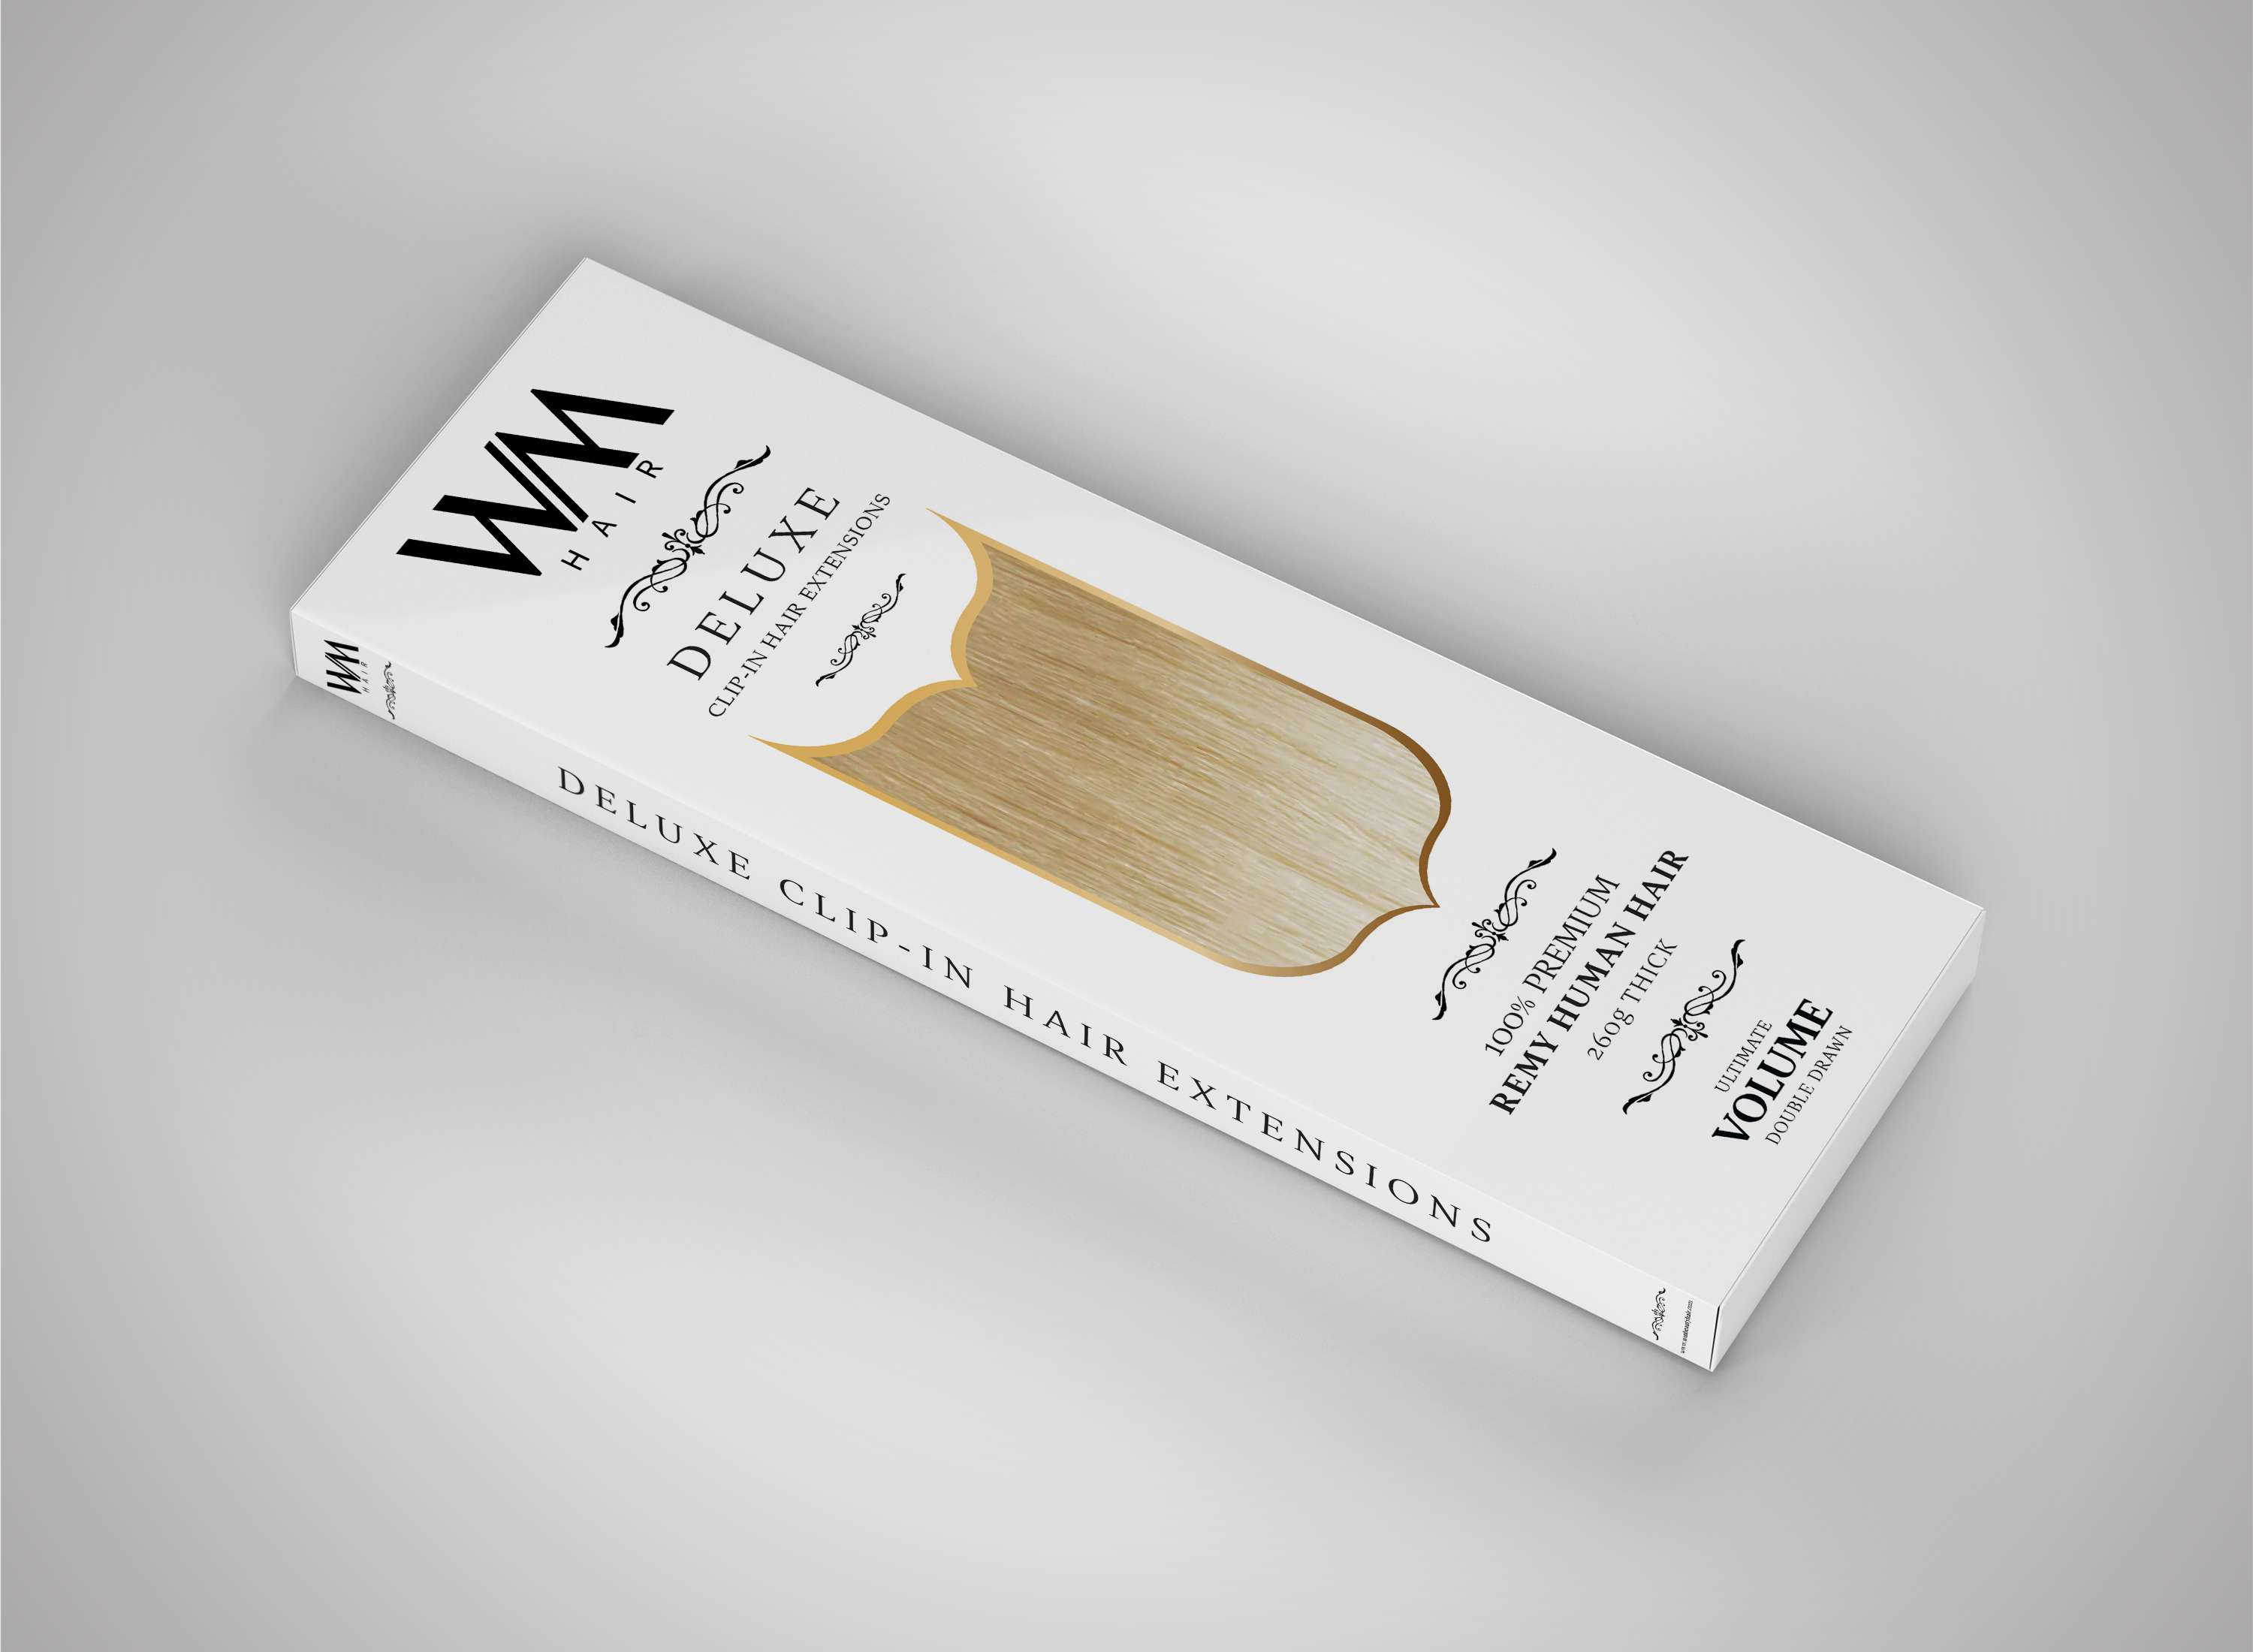 deluxe-clip-in-hair-extensions-packaging-design-remy-angled